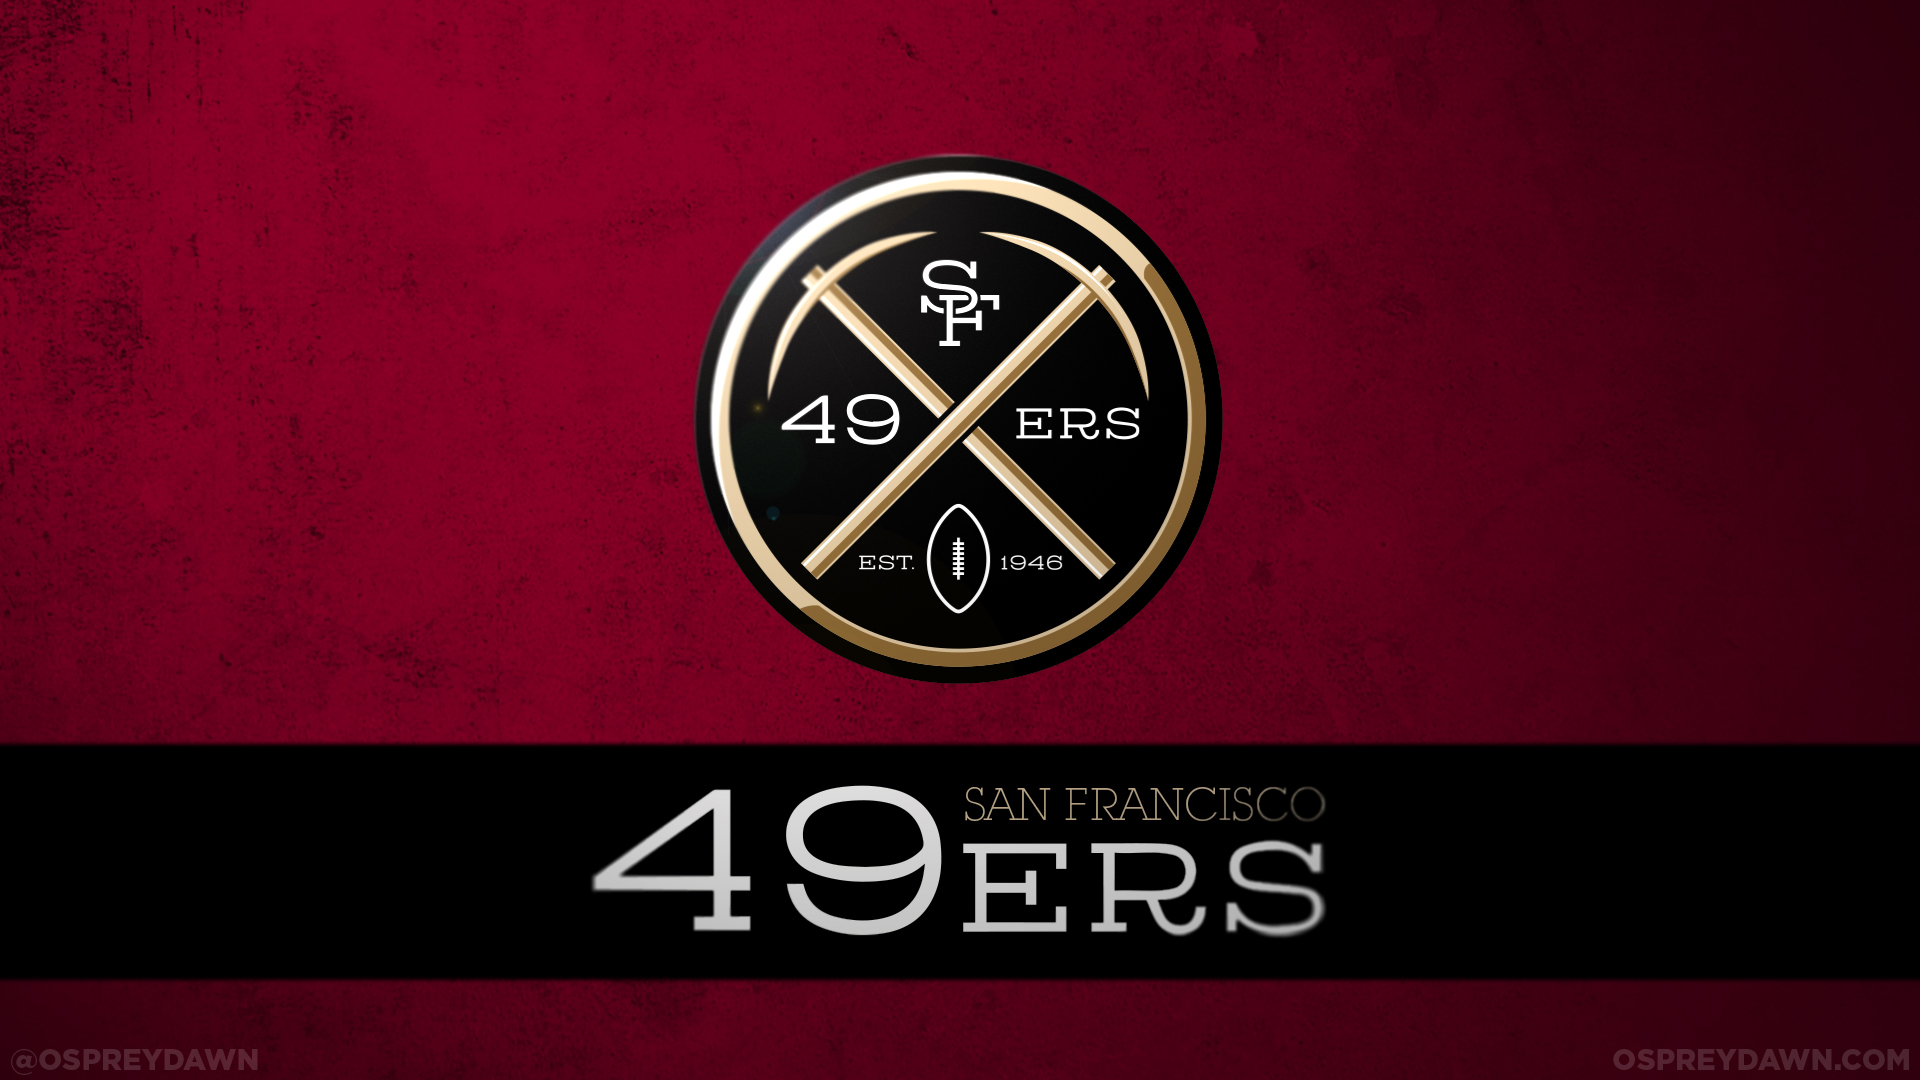 The San Francisco 49ers - Osprey Dawn